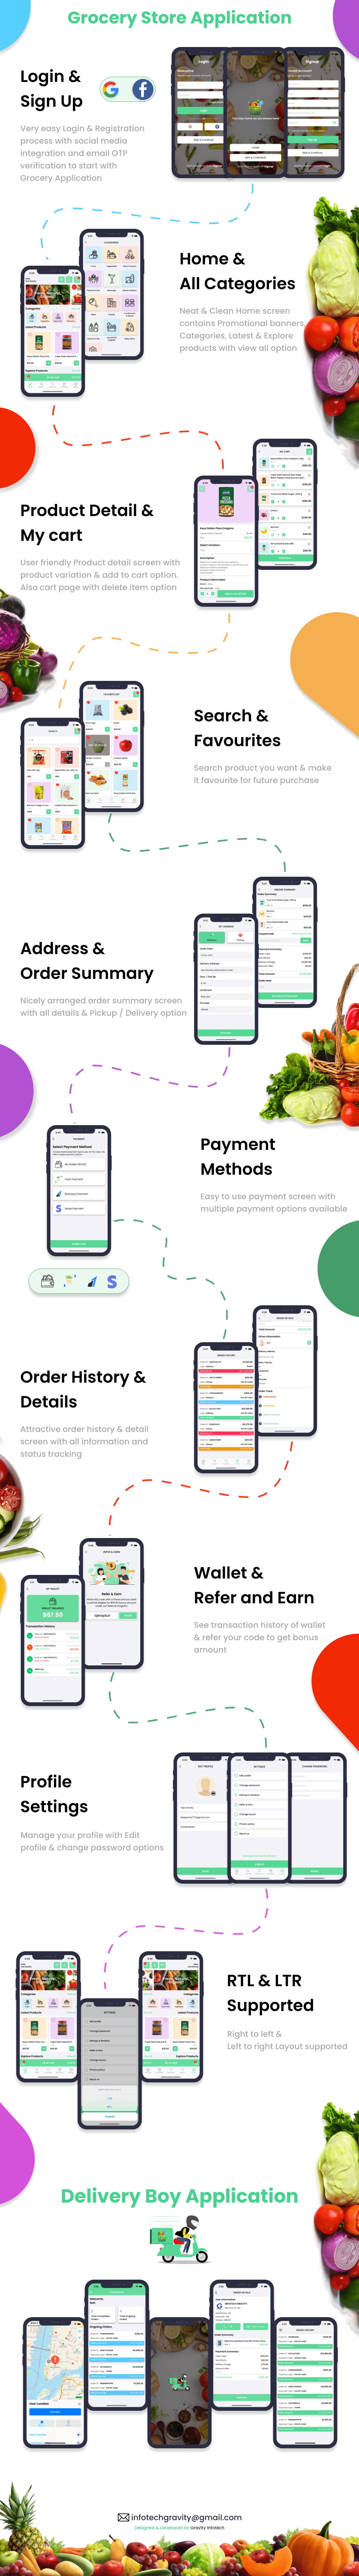 Grocery | Single Grocery Store Android User & Delivery Boy App With Admin Panel - 9